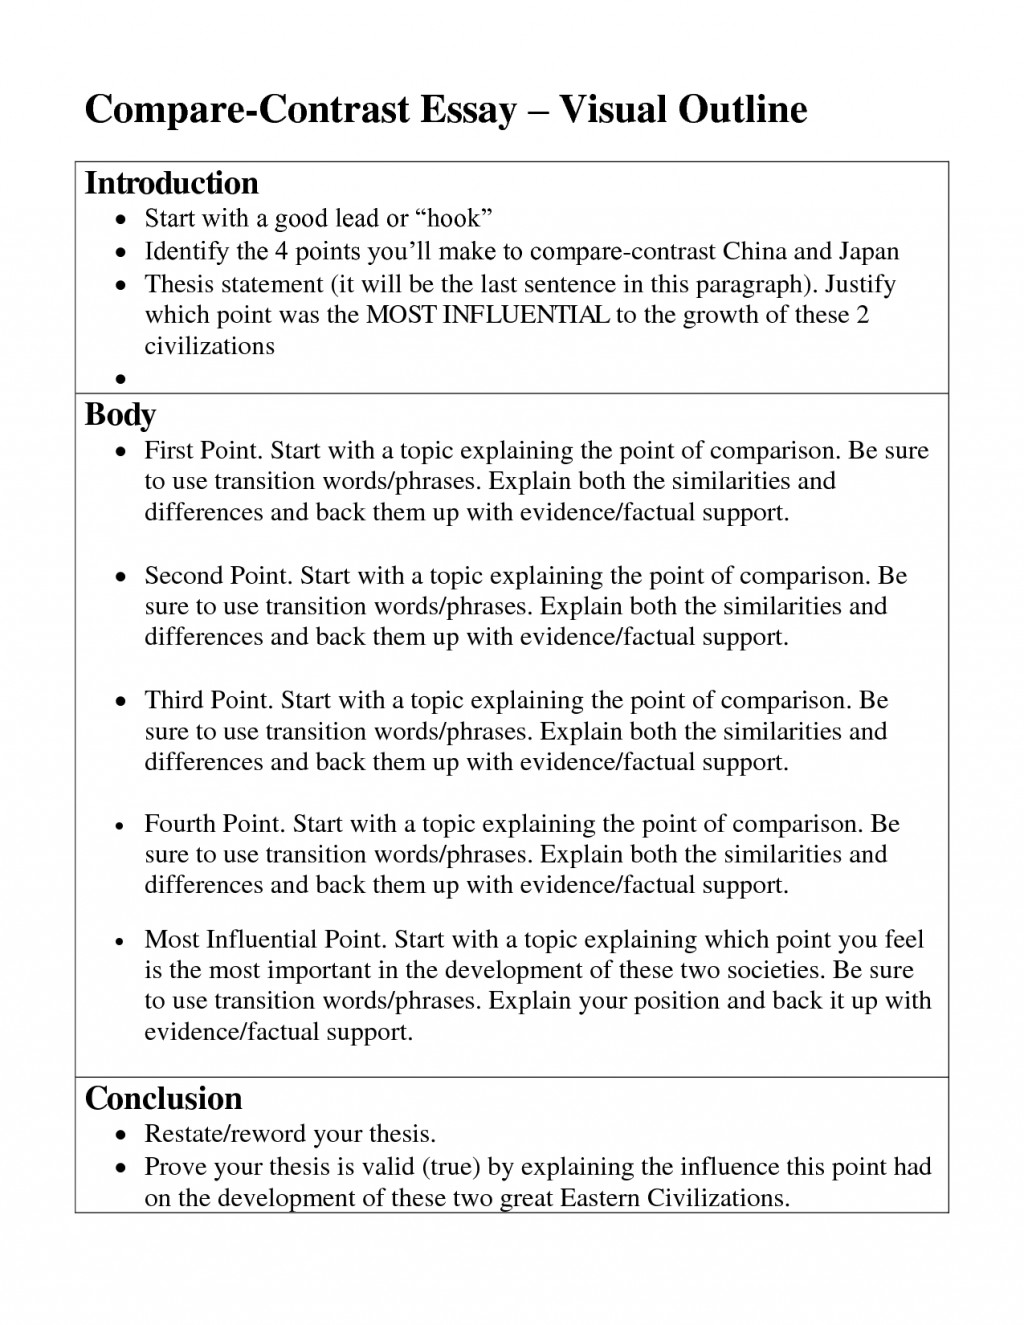 006 Compare And Contrast Essay Sample Incredible 6th Grade Comparison Pdf Point By Large